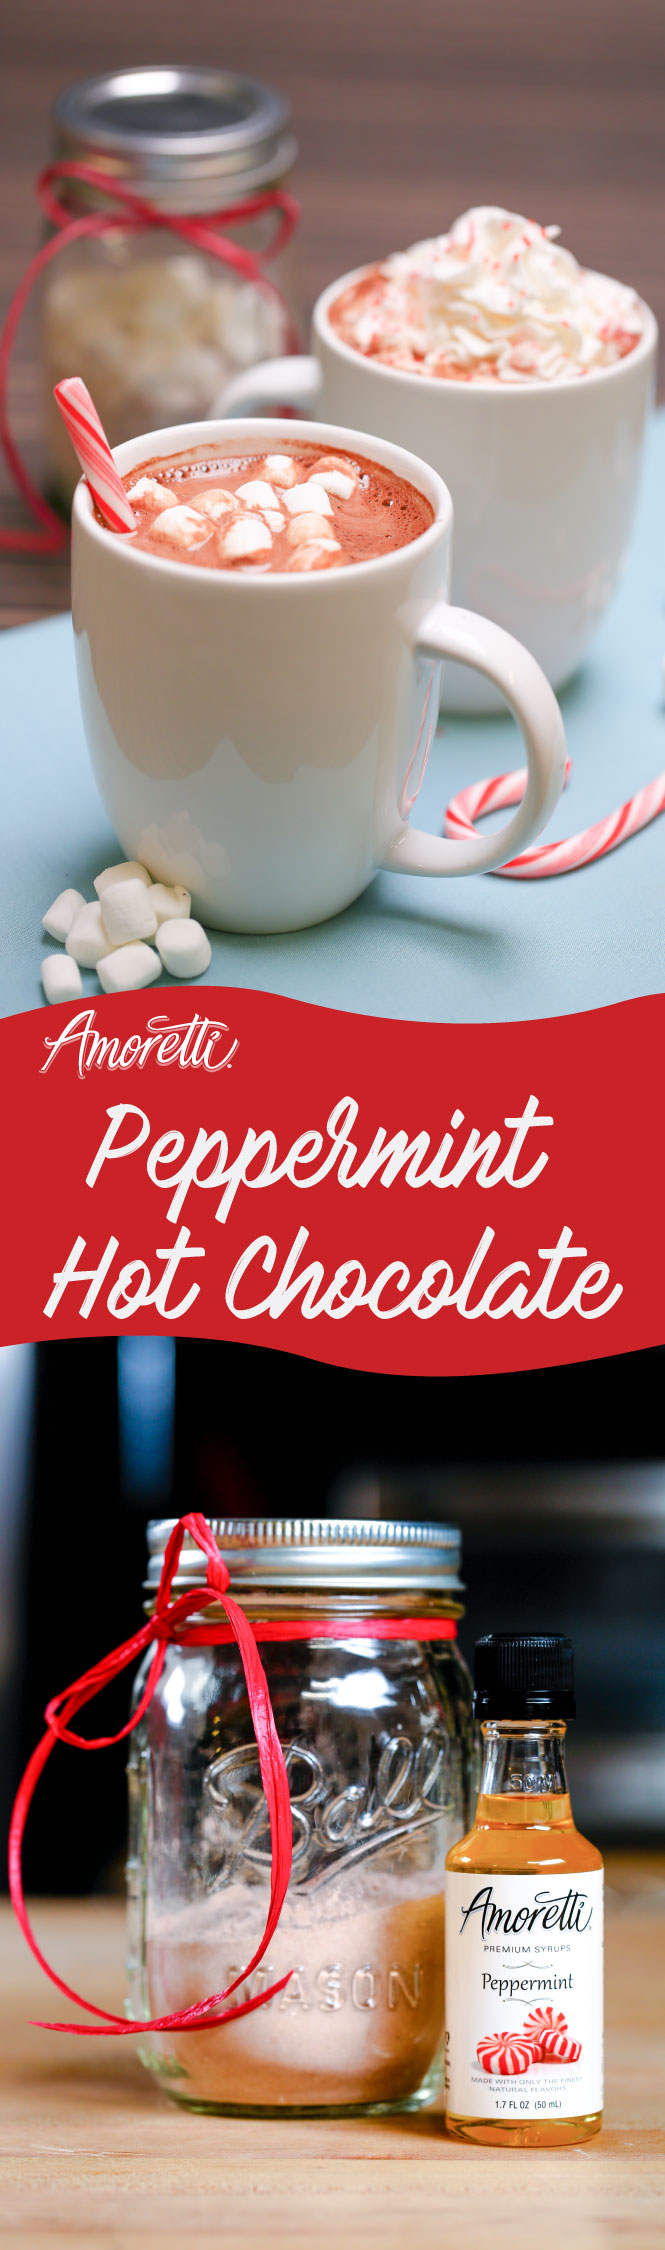 The joy of giving is a lot more satisfying than receiving so give the gift of delicious, chocolatey goodness with our Peppermint Hot Chocolate mix!